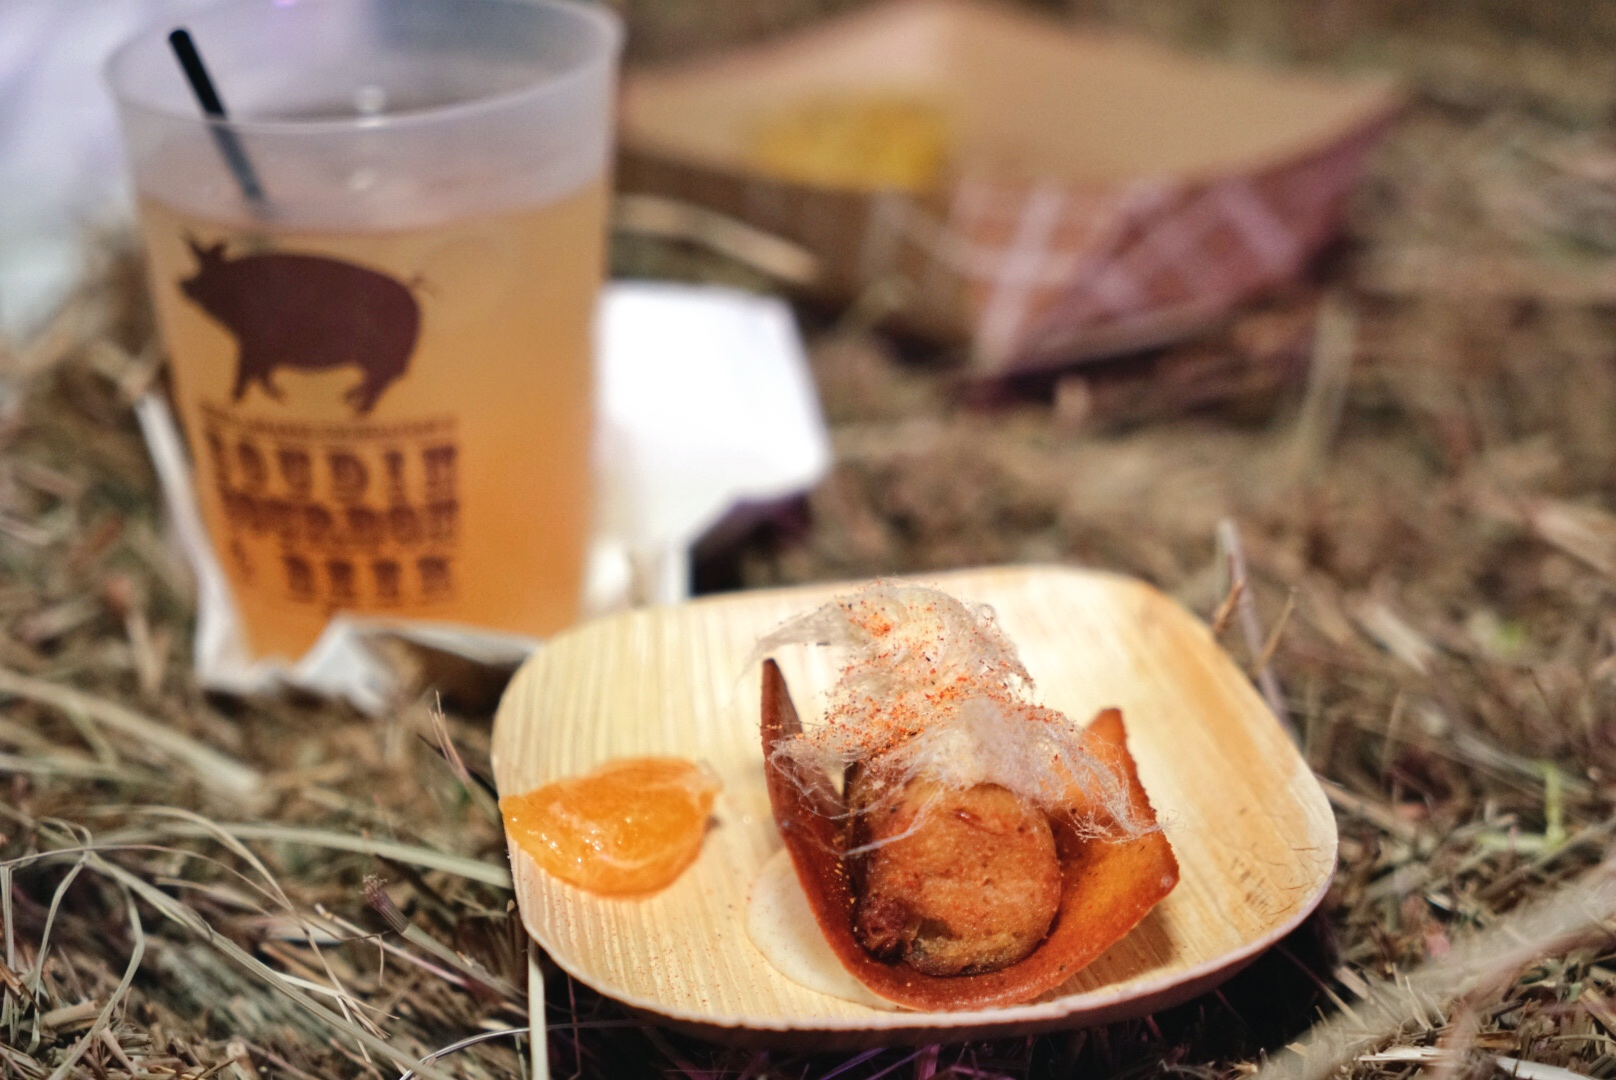 Chef creations at Boudin, Bourbon & Beer (Photo via Paul Broussard)